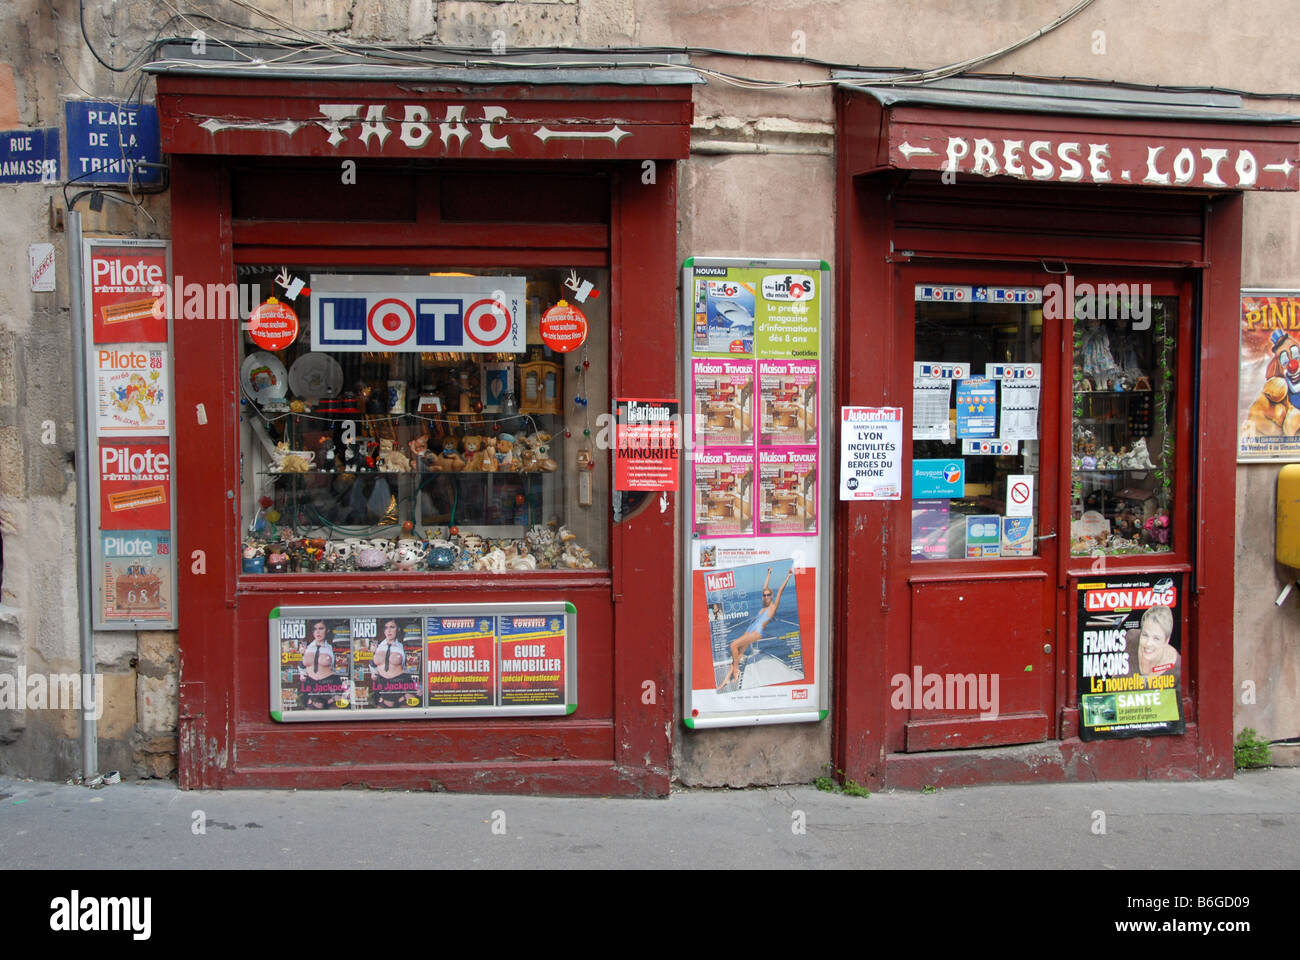 A Tobac and newsagent shop in vieux (0ld) Lyon 0ld France - Stock Image